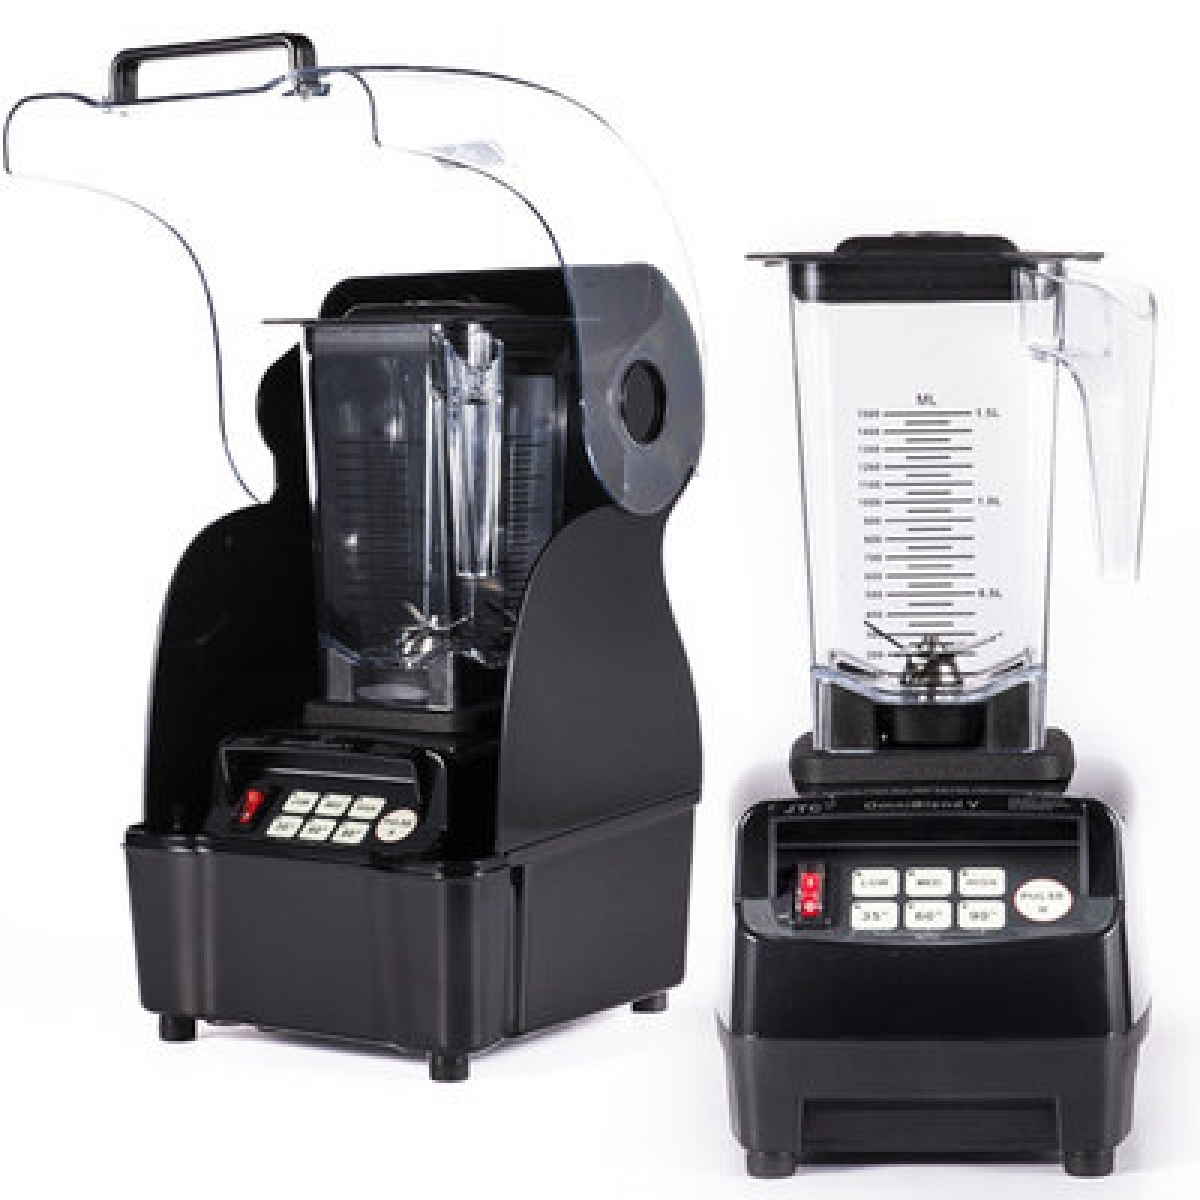 Industrial Kitchen Blender: Snova 3HP Digital Commercial Kitchen Blender With Sound